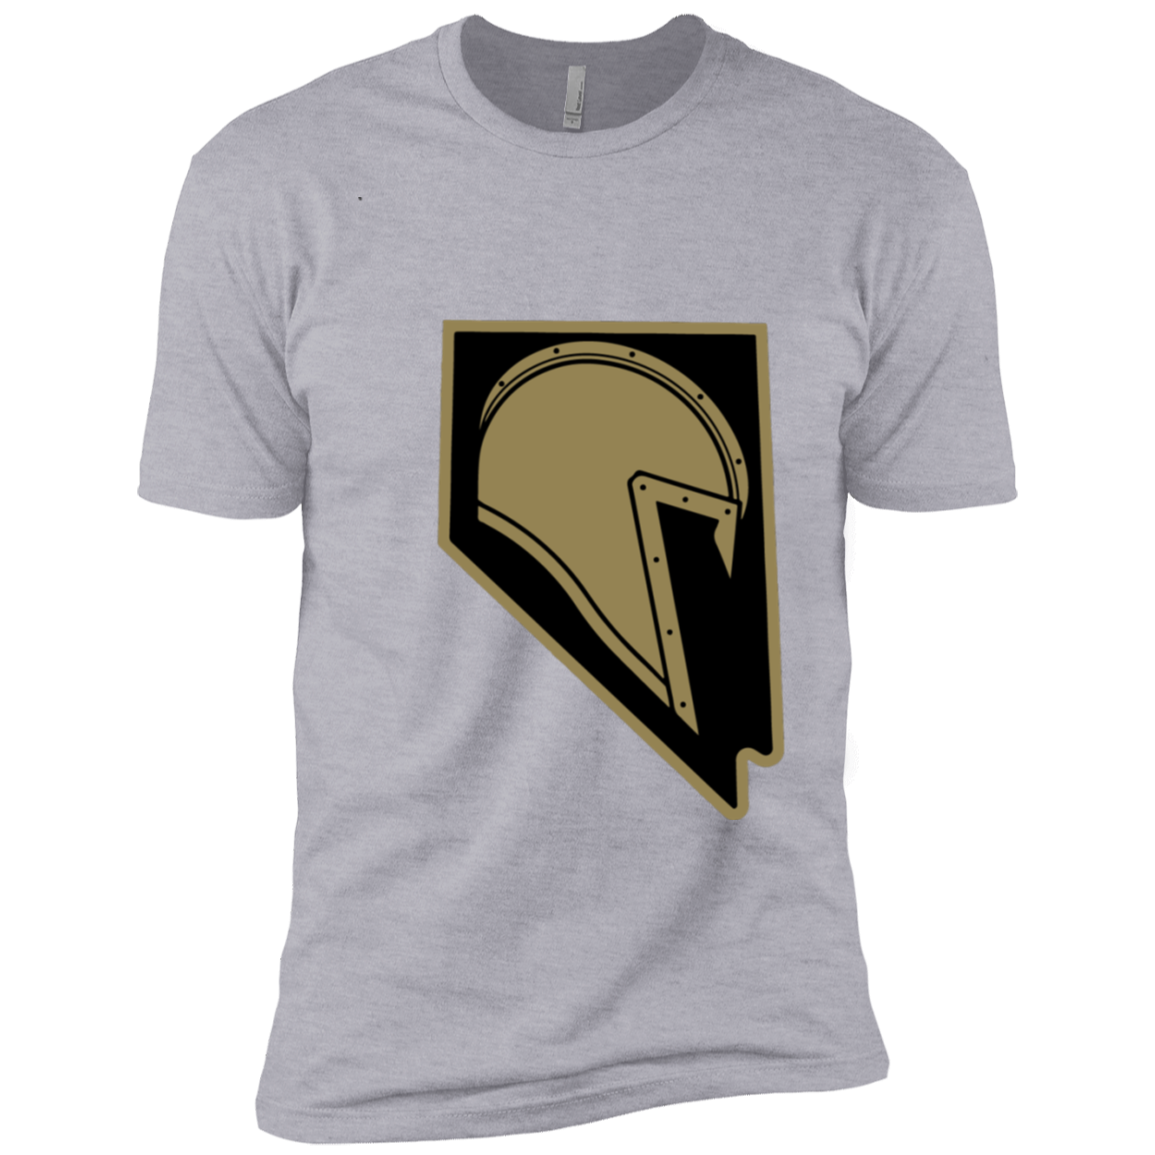 Las Vegas Golden Knights Men's Classic Tee